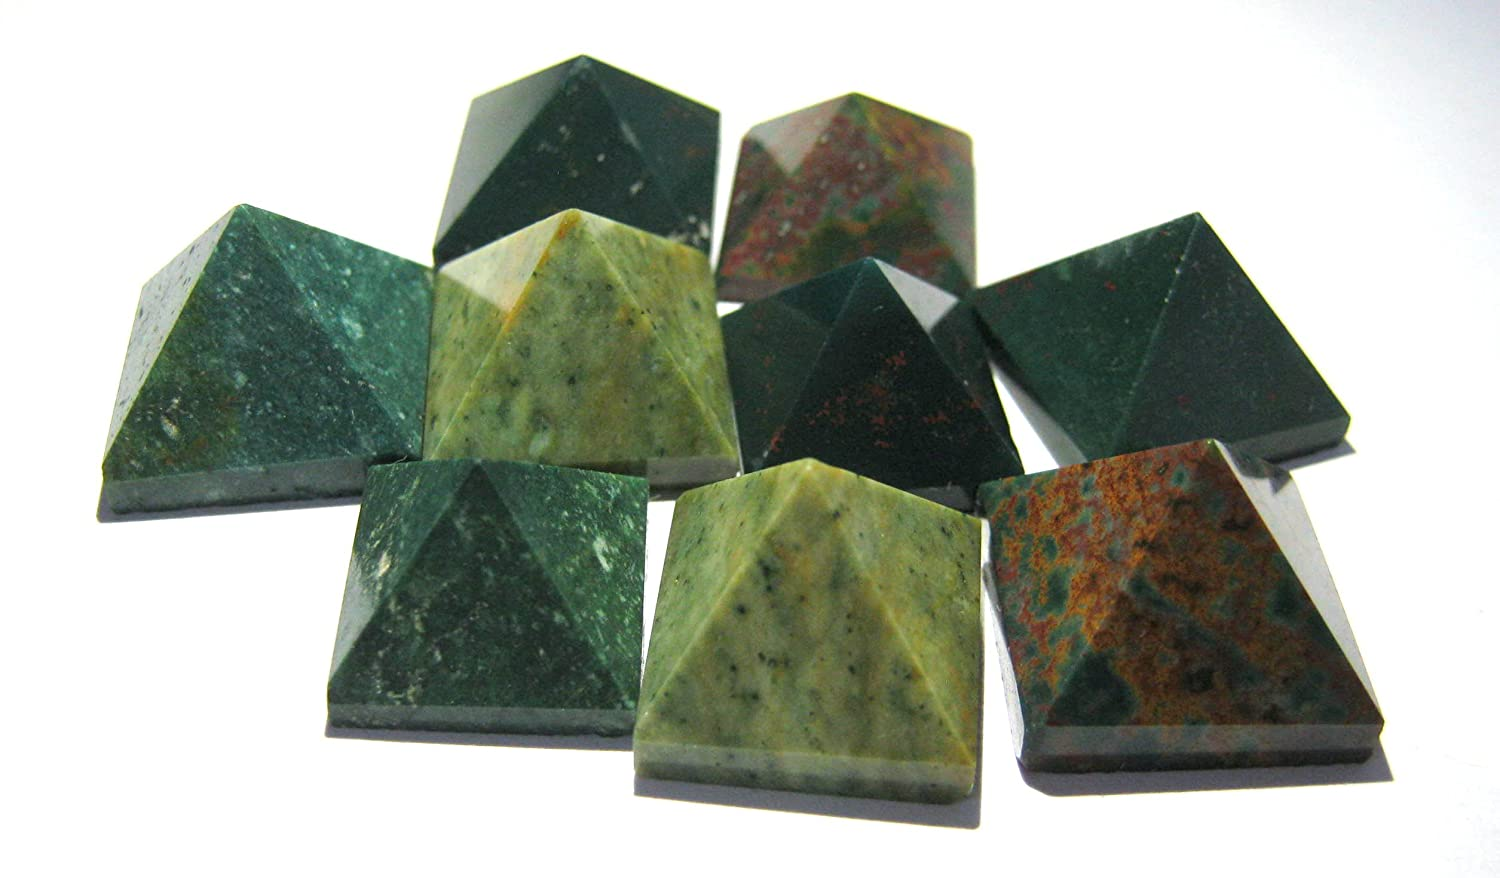 Crystal Miracle Excellent Set of Nine Bloodstone Loose Mini Pyramids Crystal Healing Men Women Gift Reiki FENG Shui Positive Energy VAASTU Bagua Health Wealth Gemstone Meditation Aura Peace Mind